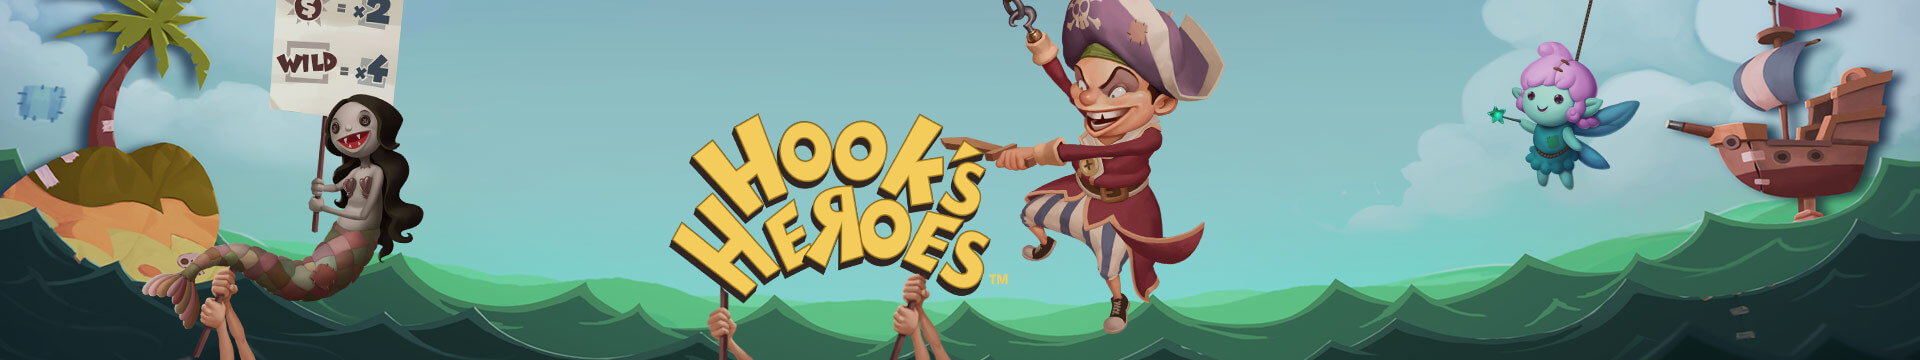 Promotion - Welcome Hooks Heroes